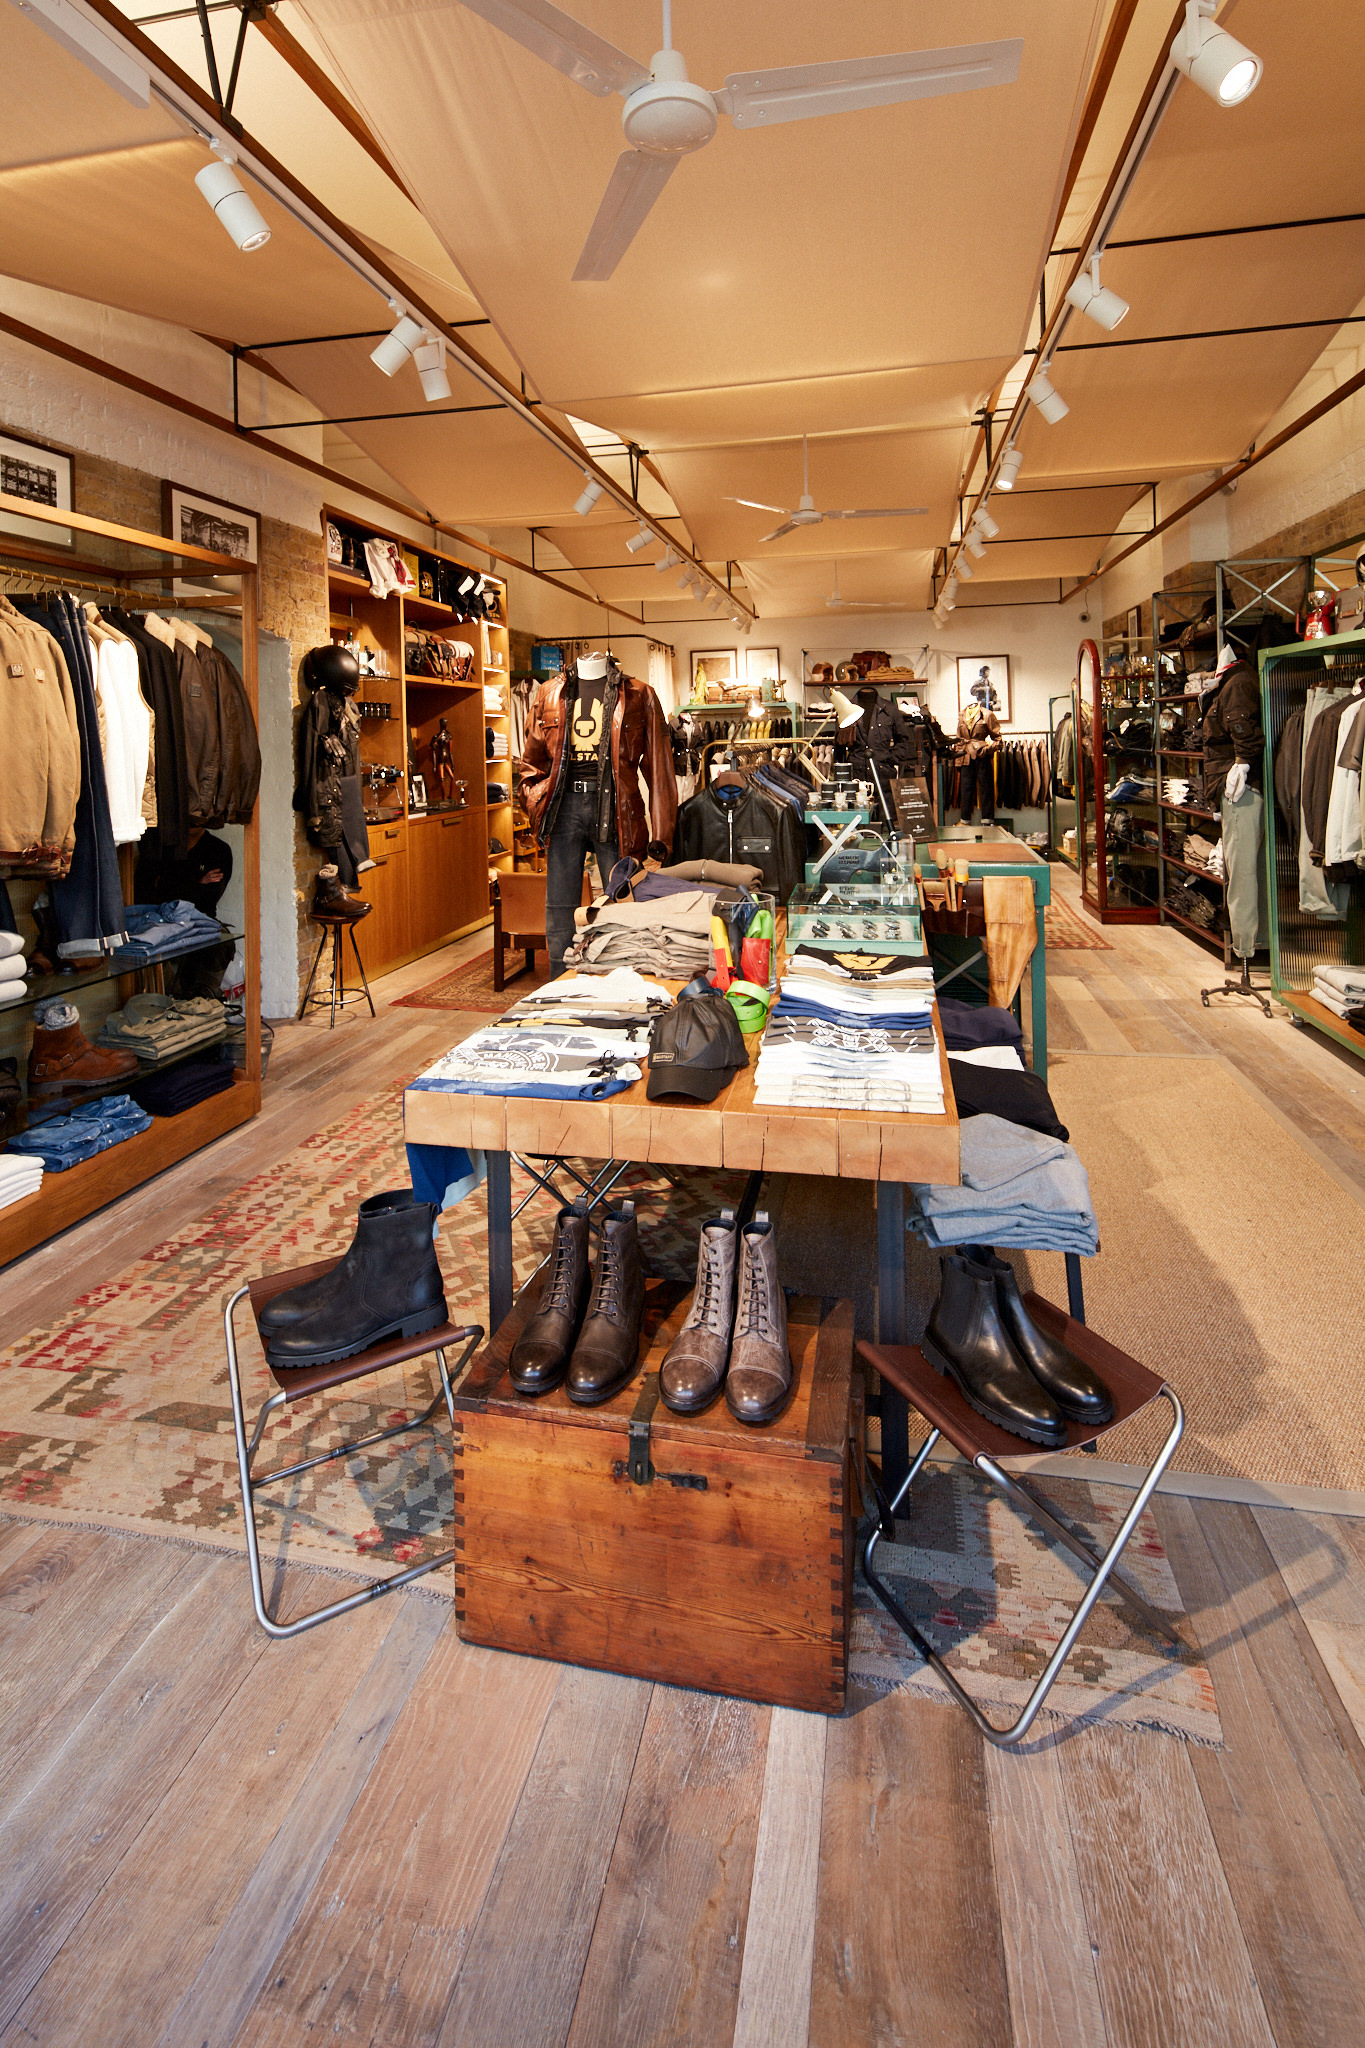 Belstaff's Spitalfields concept has been designed to bring people together